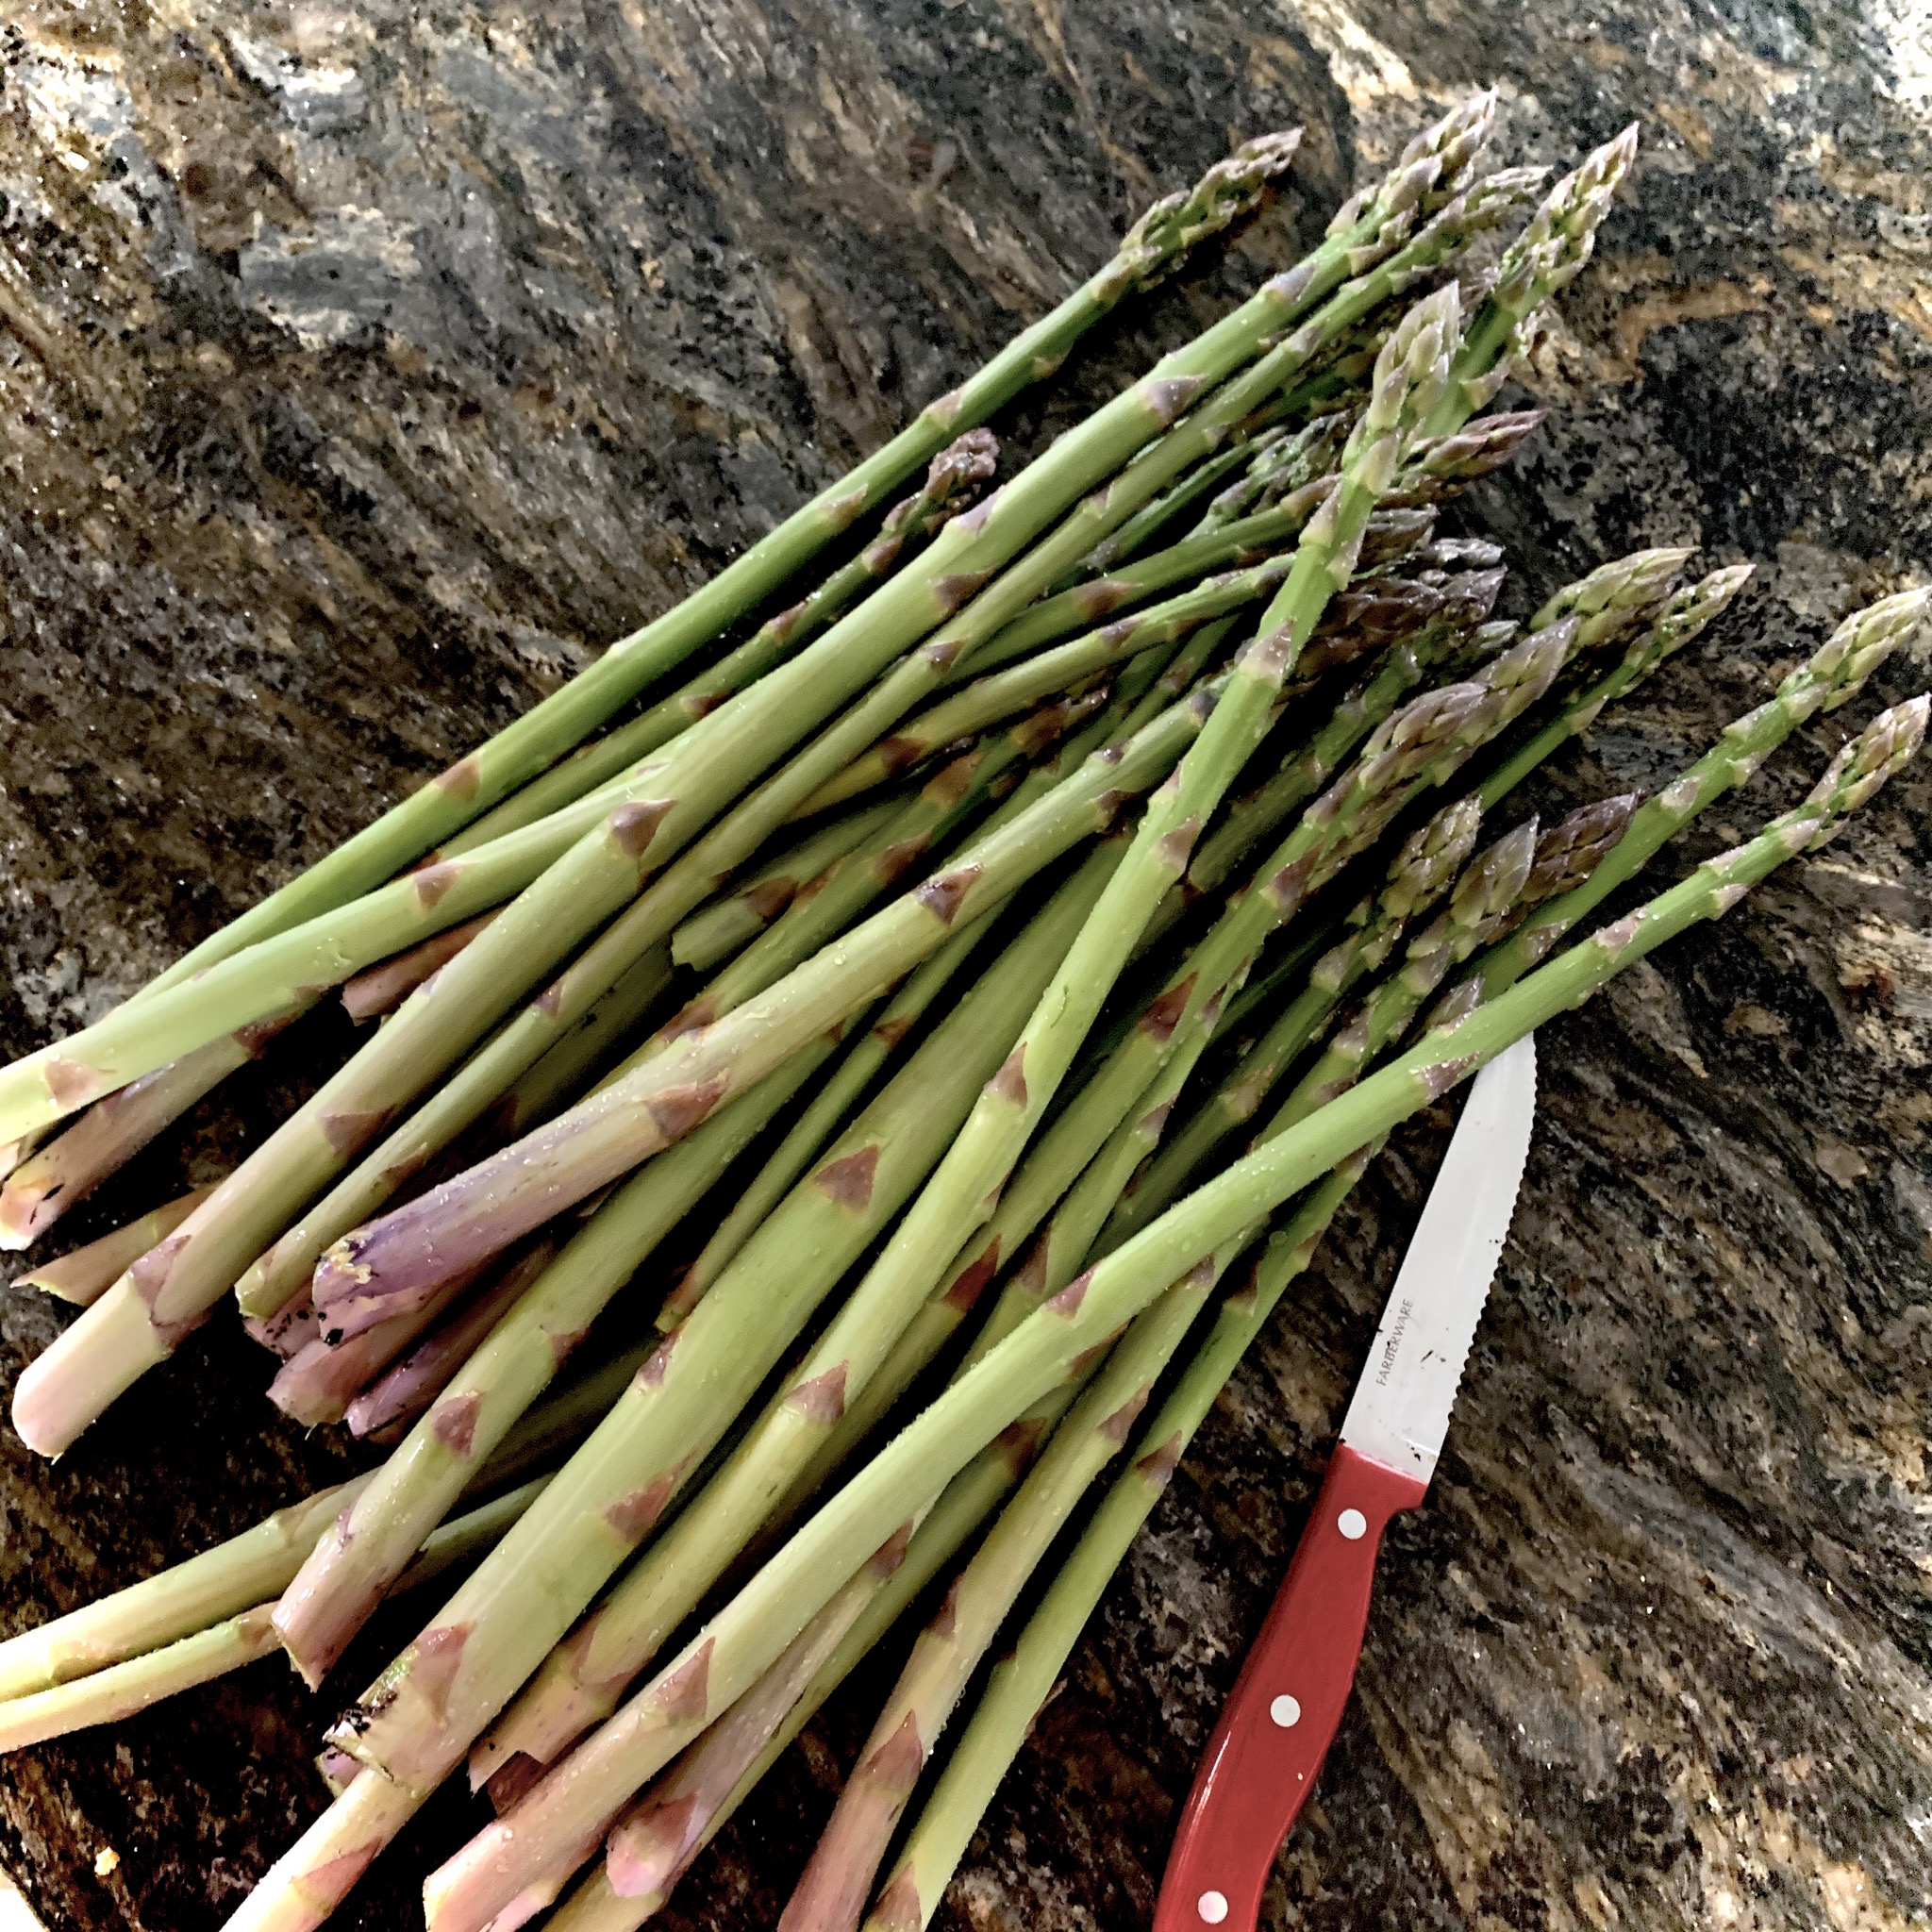 14CC218C BCE1 44F3 8466 343AD0A76273 How to double or triple your asparagus yield